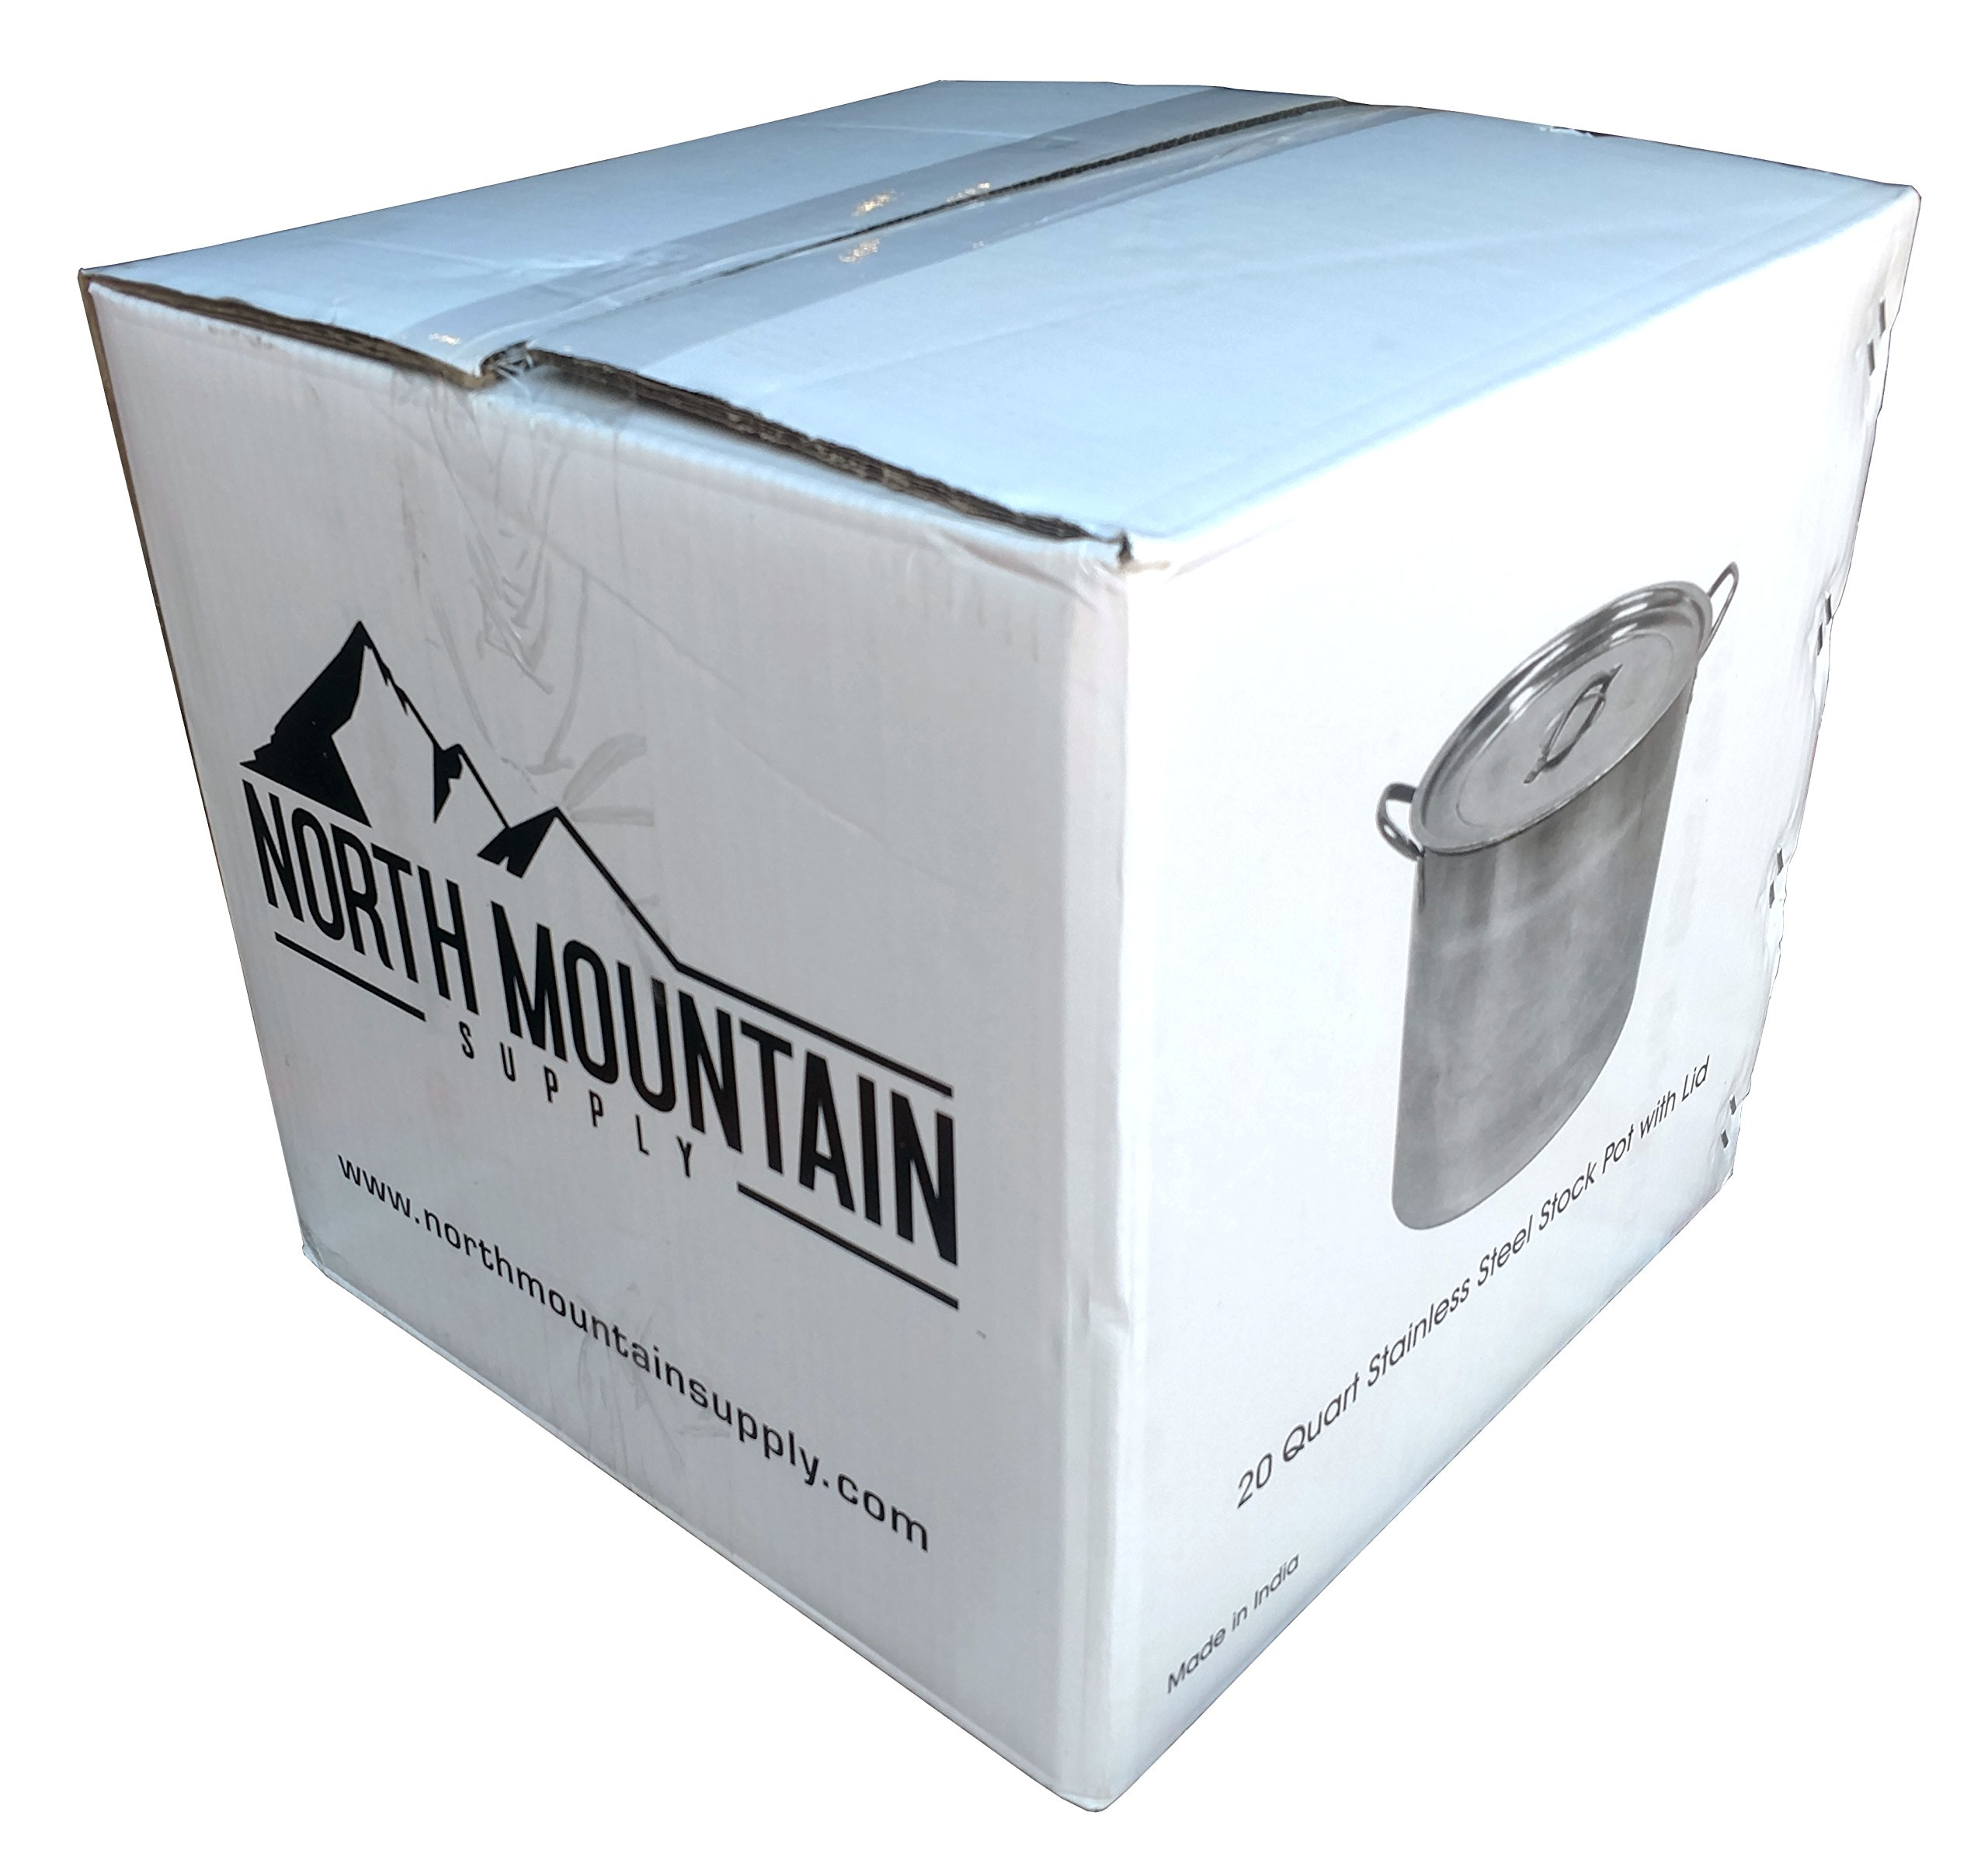 Beer Brewing Boiling Pot 5 Gallon Stainless Steel With Lid by North Mountain Supply